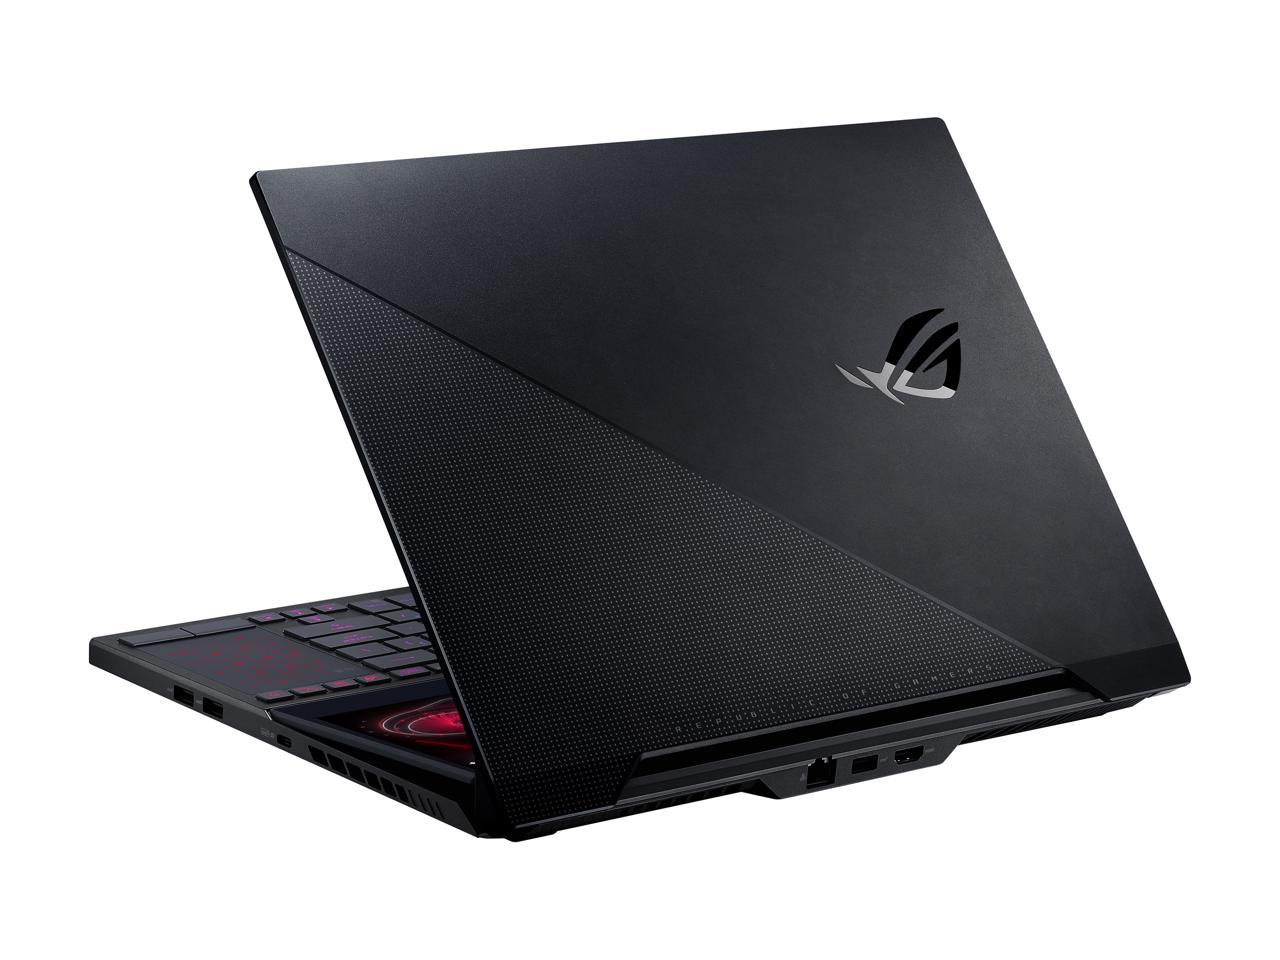 asus-rog-zephyrus-duo-se-15-laptop-with-amd-ryzen-9-5980hx-overclockable-cpu-listed-over-at-newegg_12